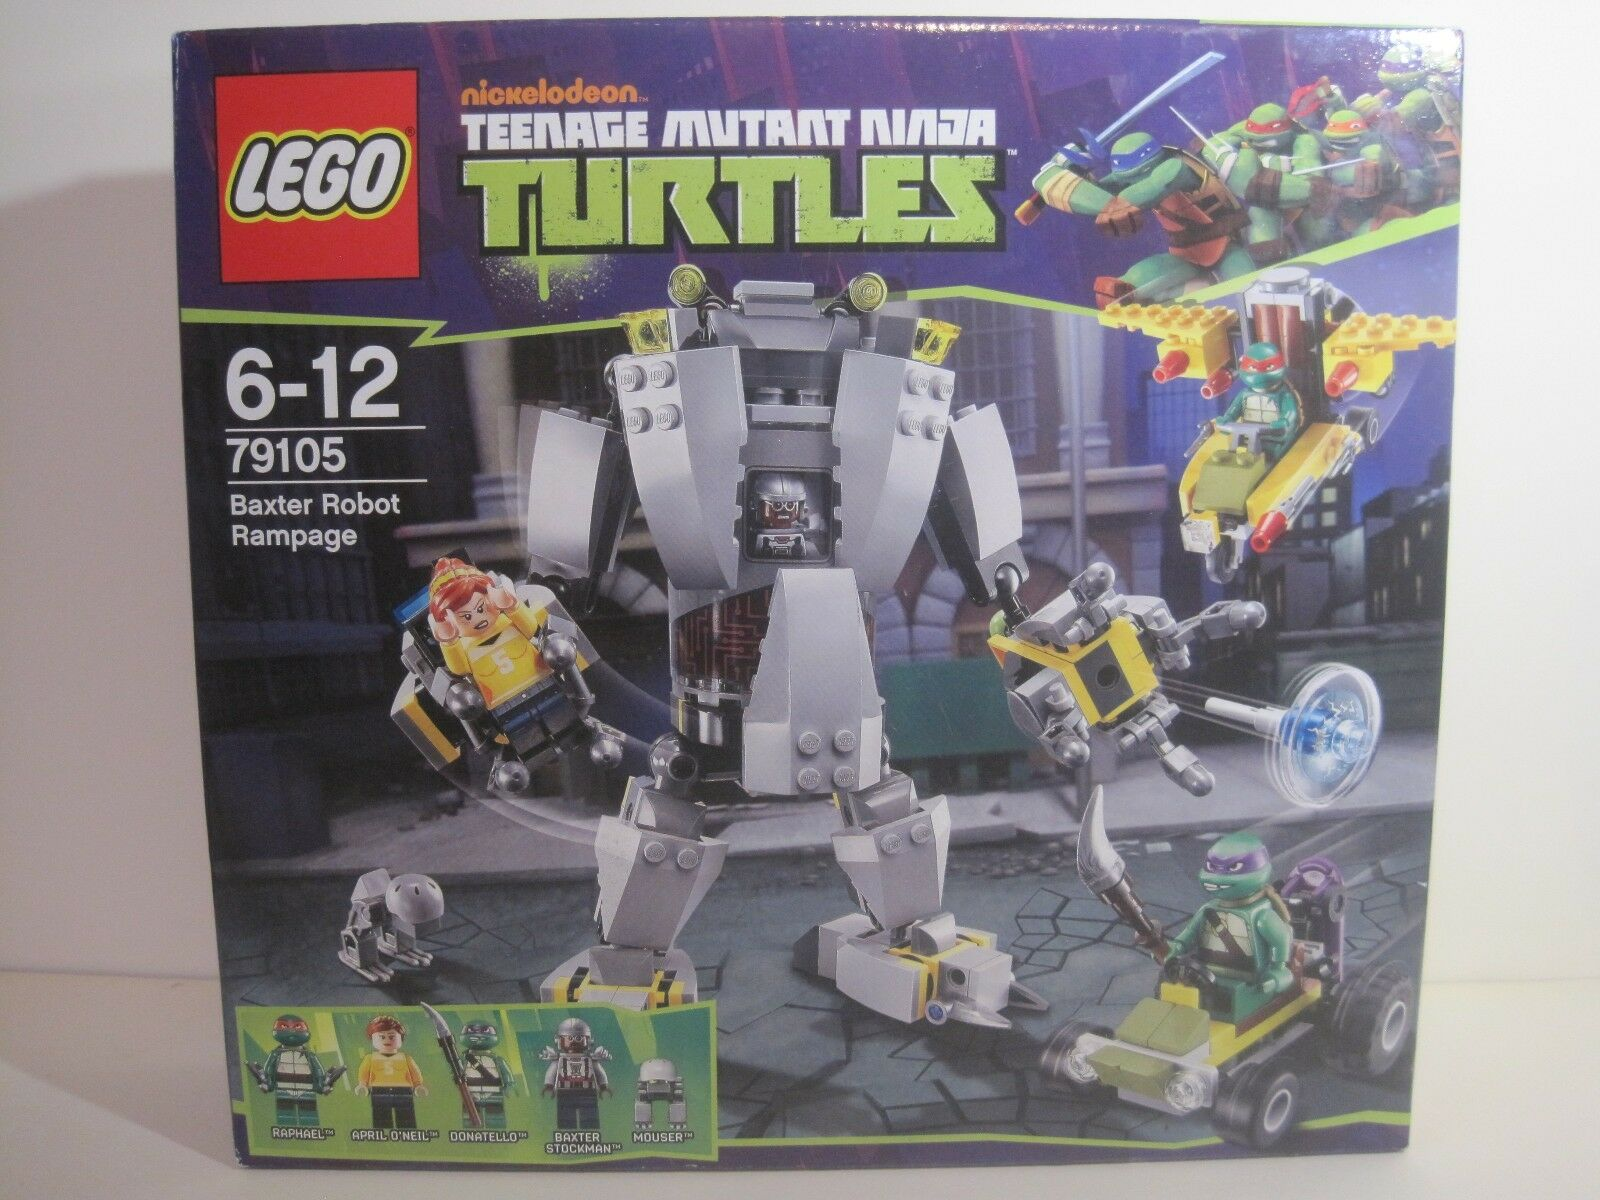 Ninja Turtles Sealed Mutant Baxter Robot Rampagenewamp; Teenage LpUqSMGzV